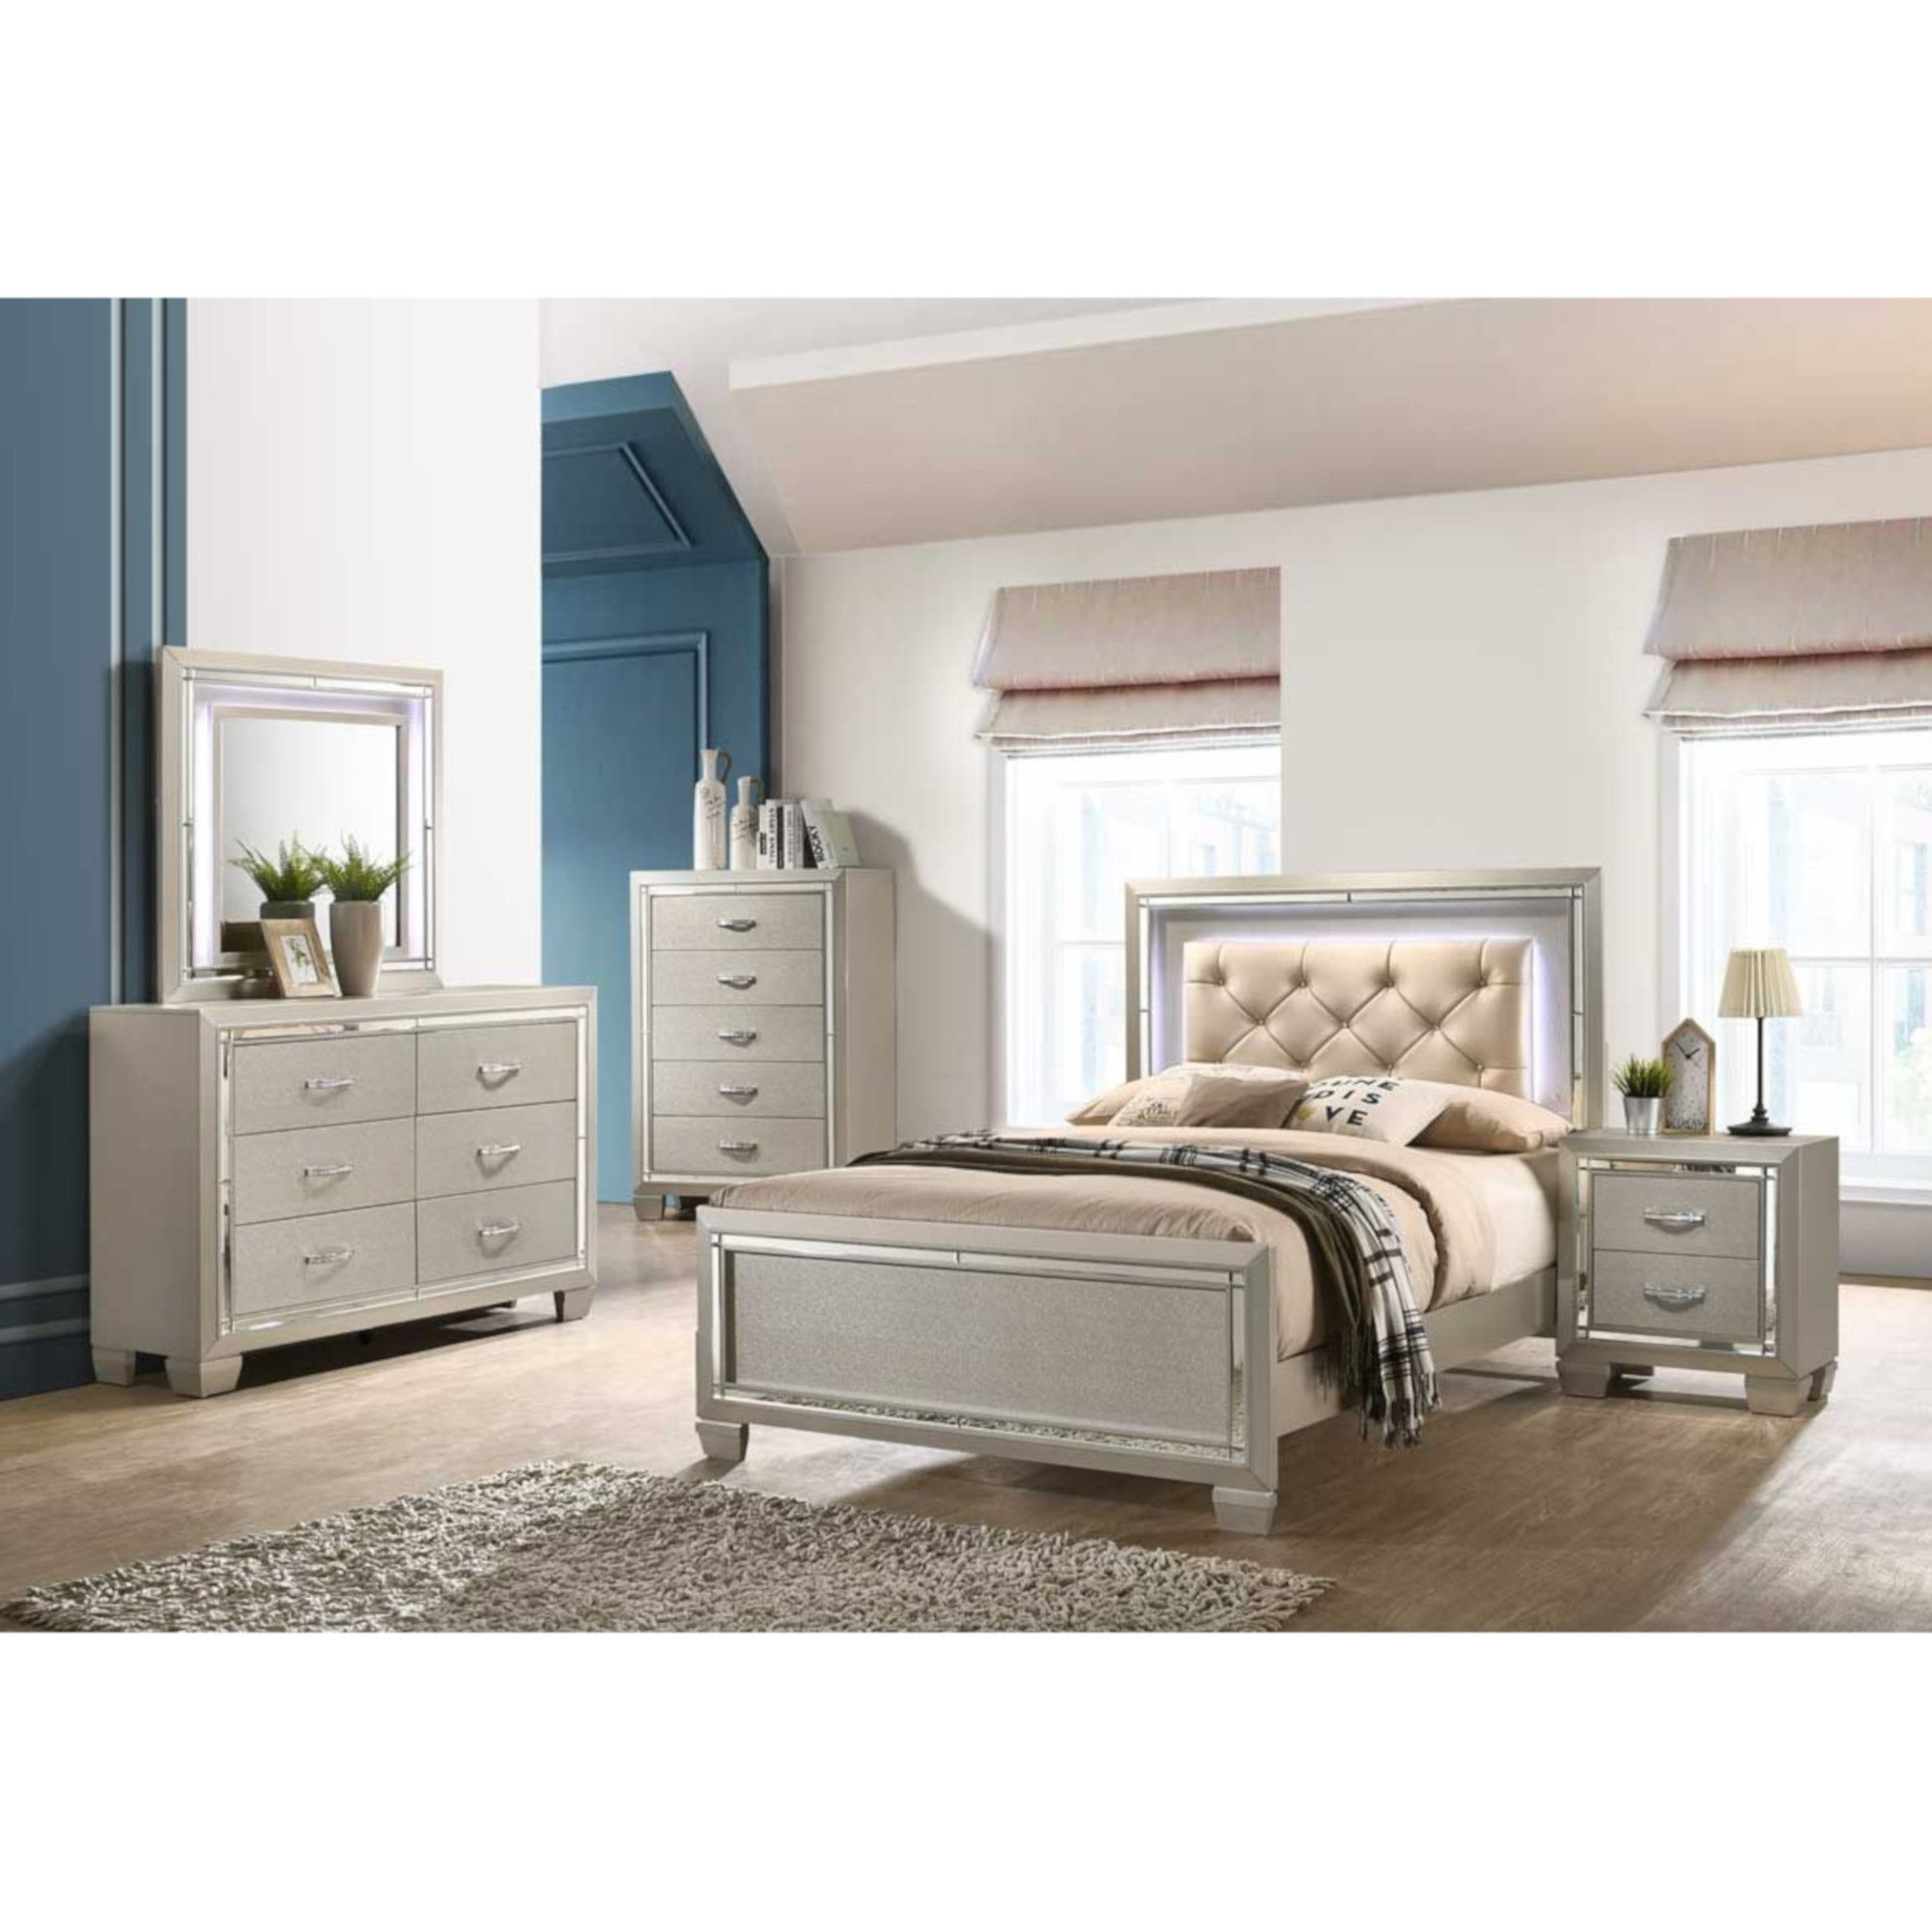 Rent To Own Elements International 7 Piece Platinum Twin Panel Bedroom Set At Aaron S Today